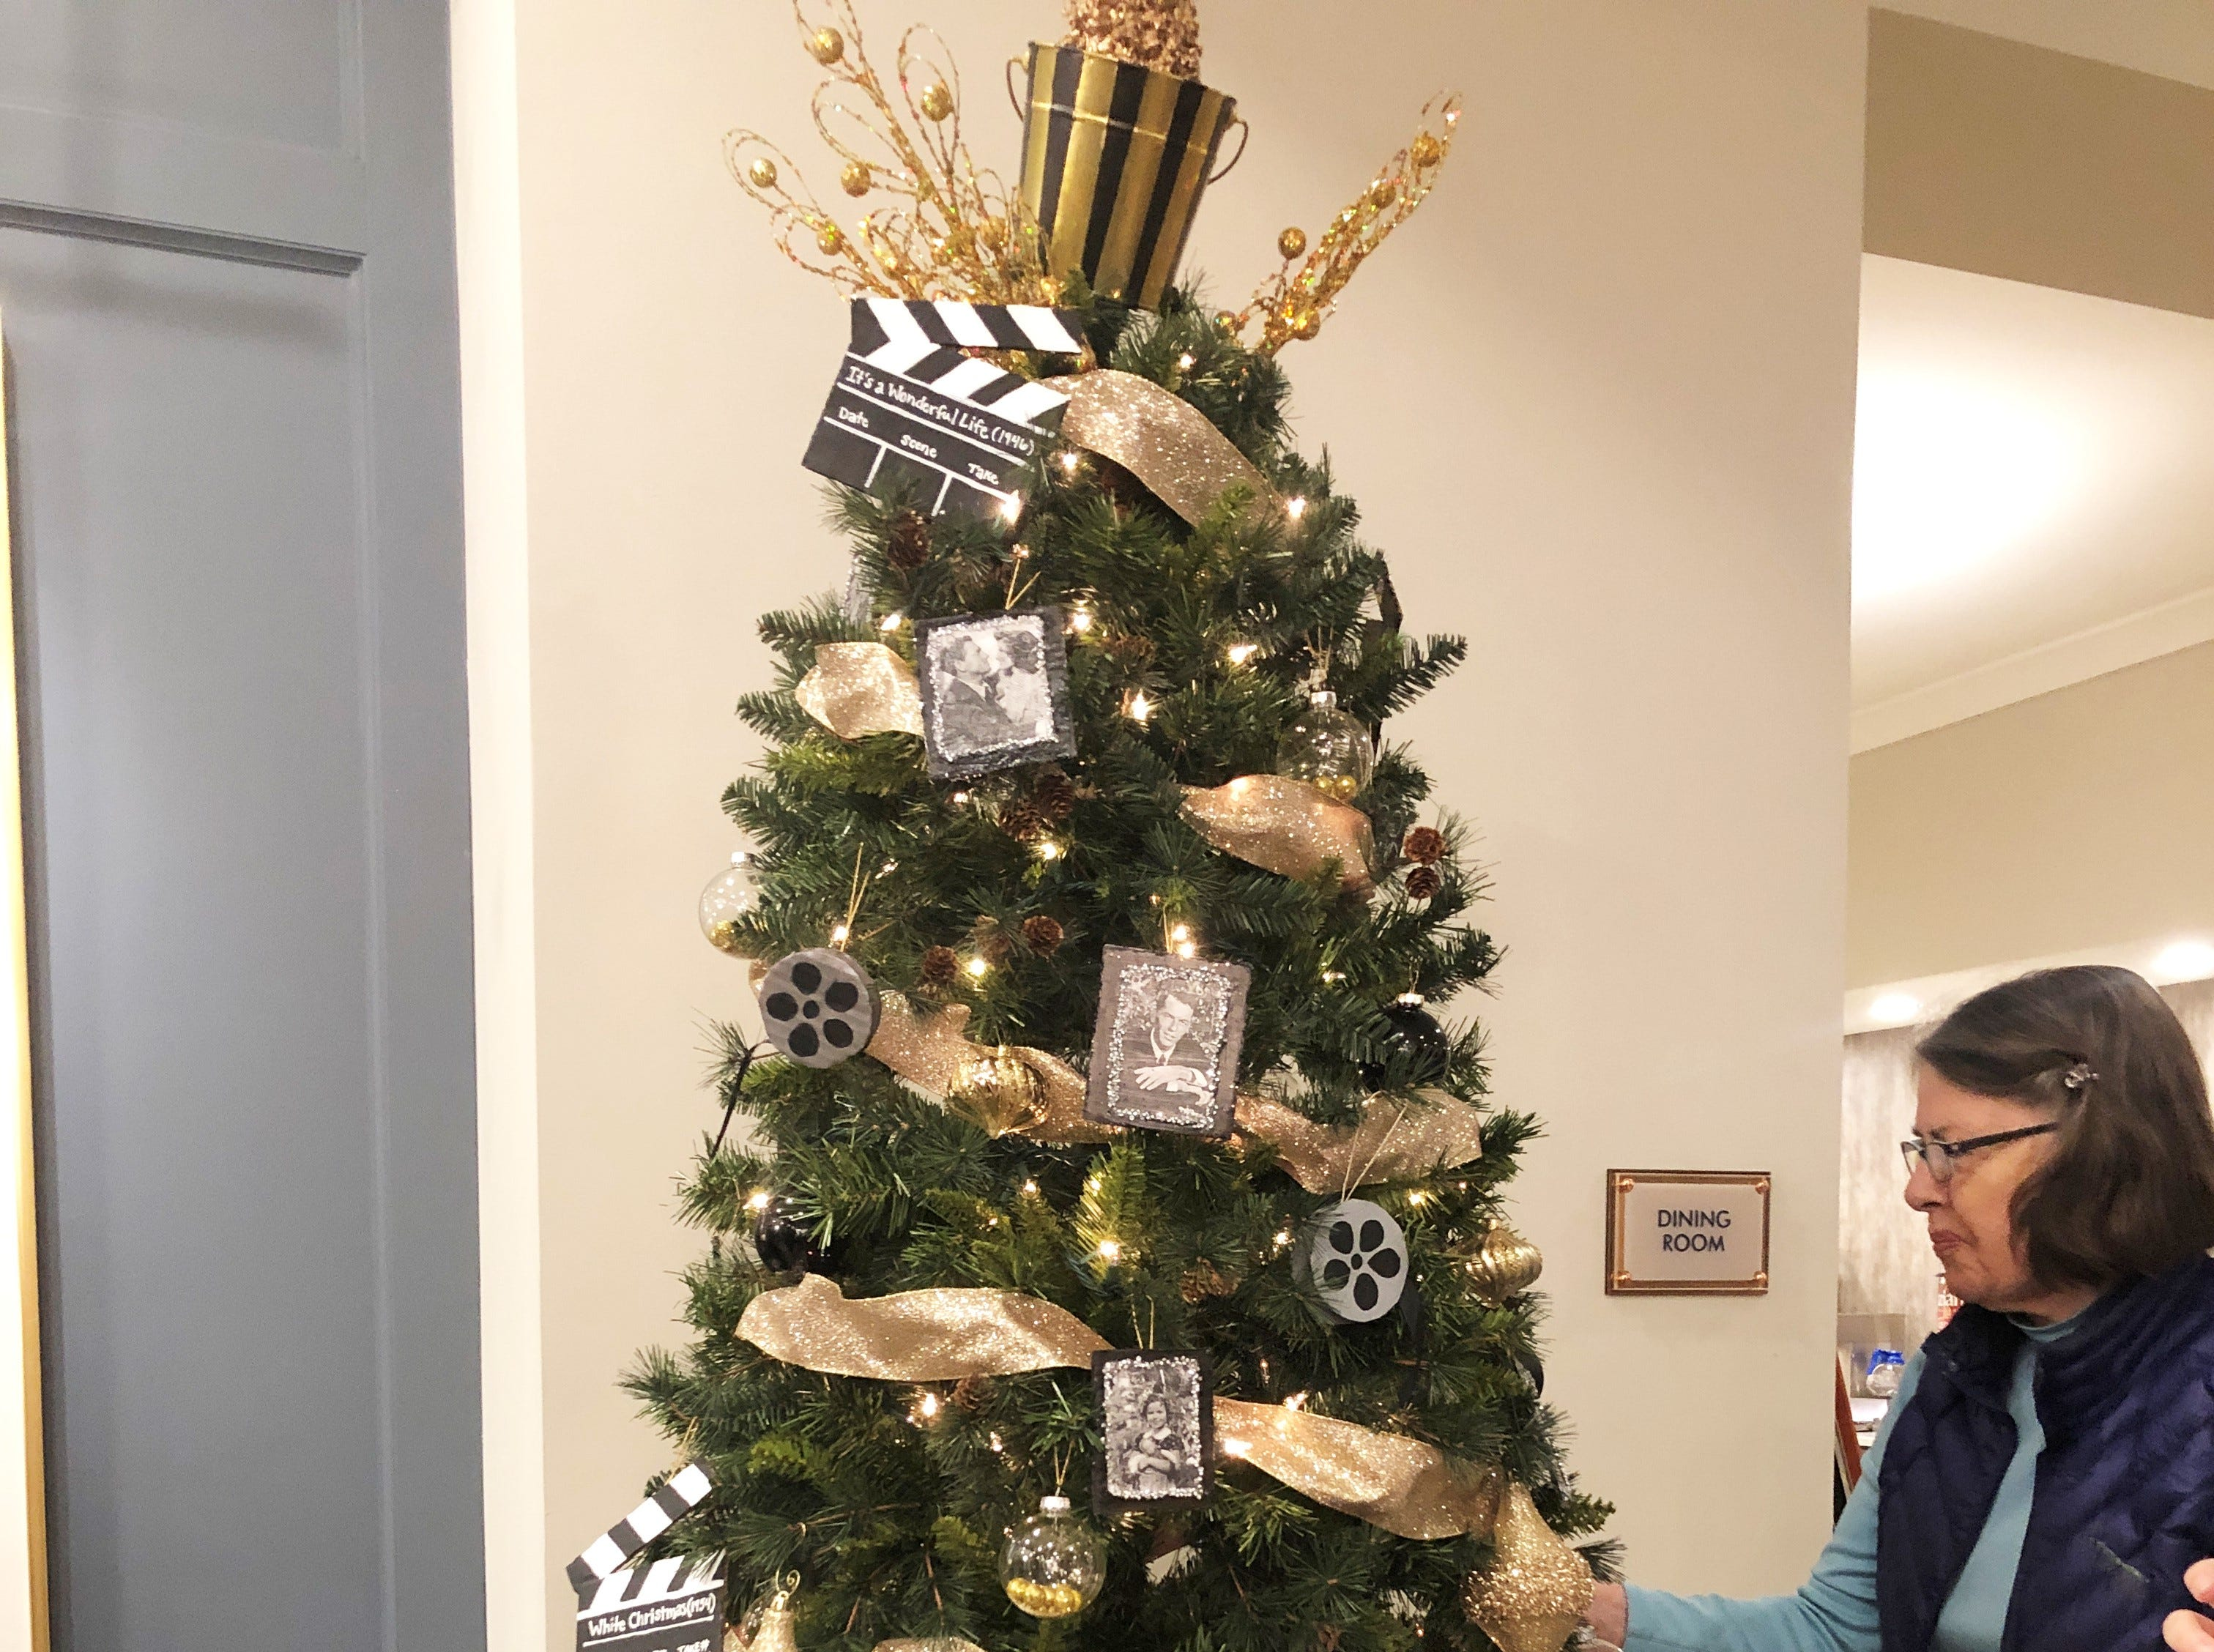 A resident at Knoxville High Independent Senior Living takes a closer look at the tree decorated by Halls Art Club.